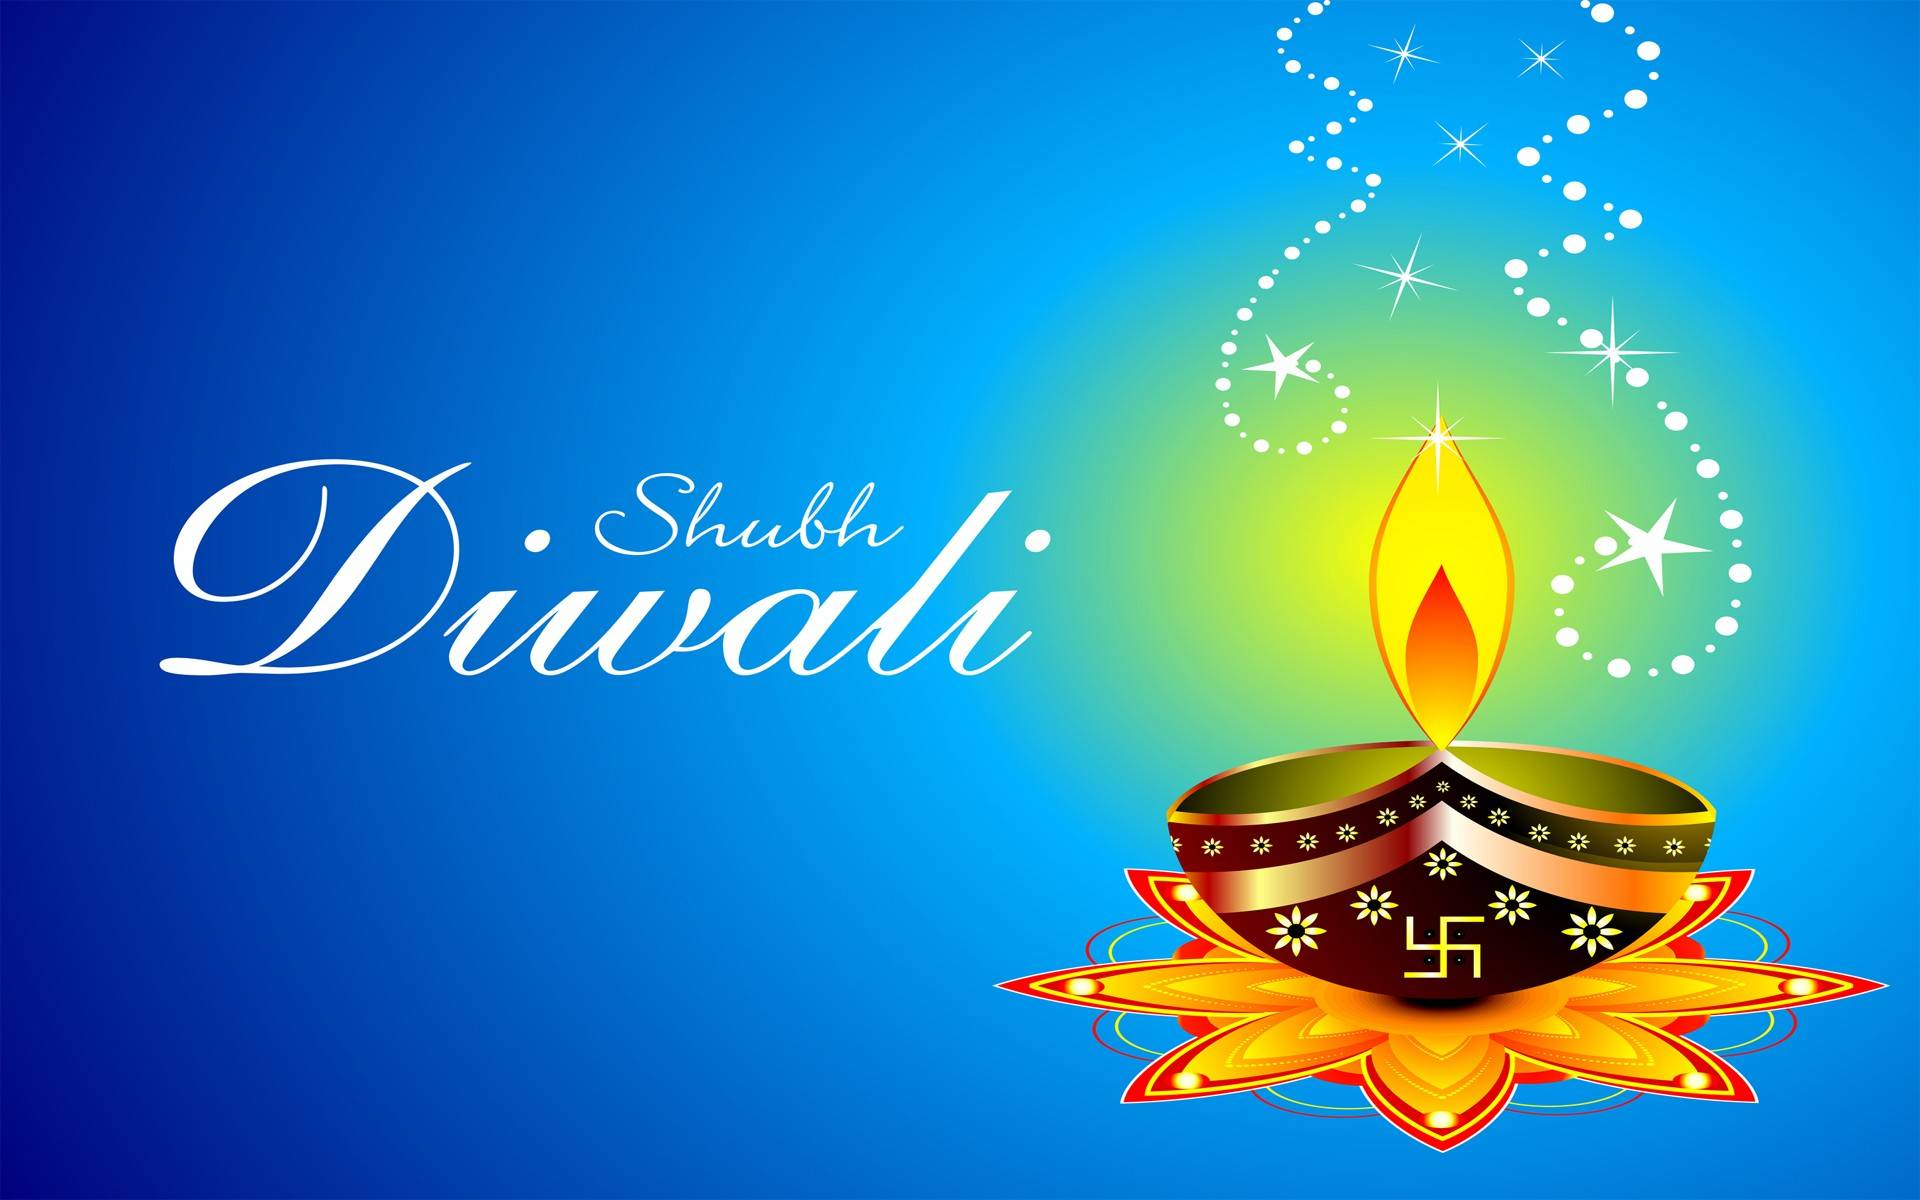 Happy Diwali Images 2018 Quotes Wishes Wallpapers Hd Greetings